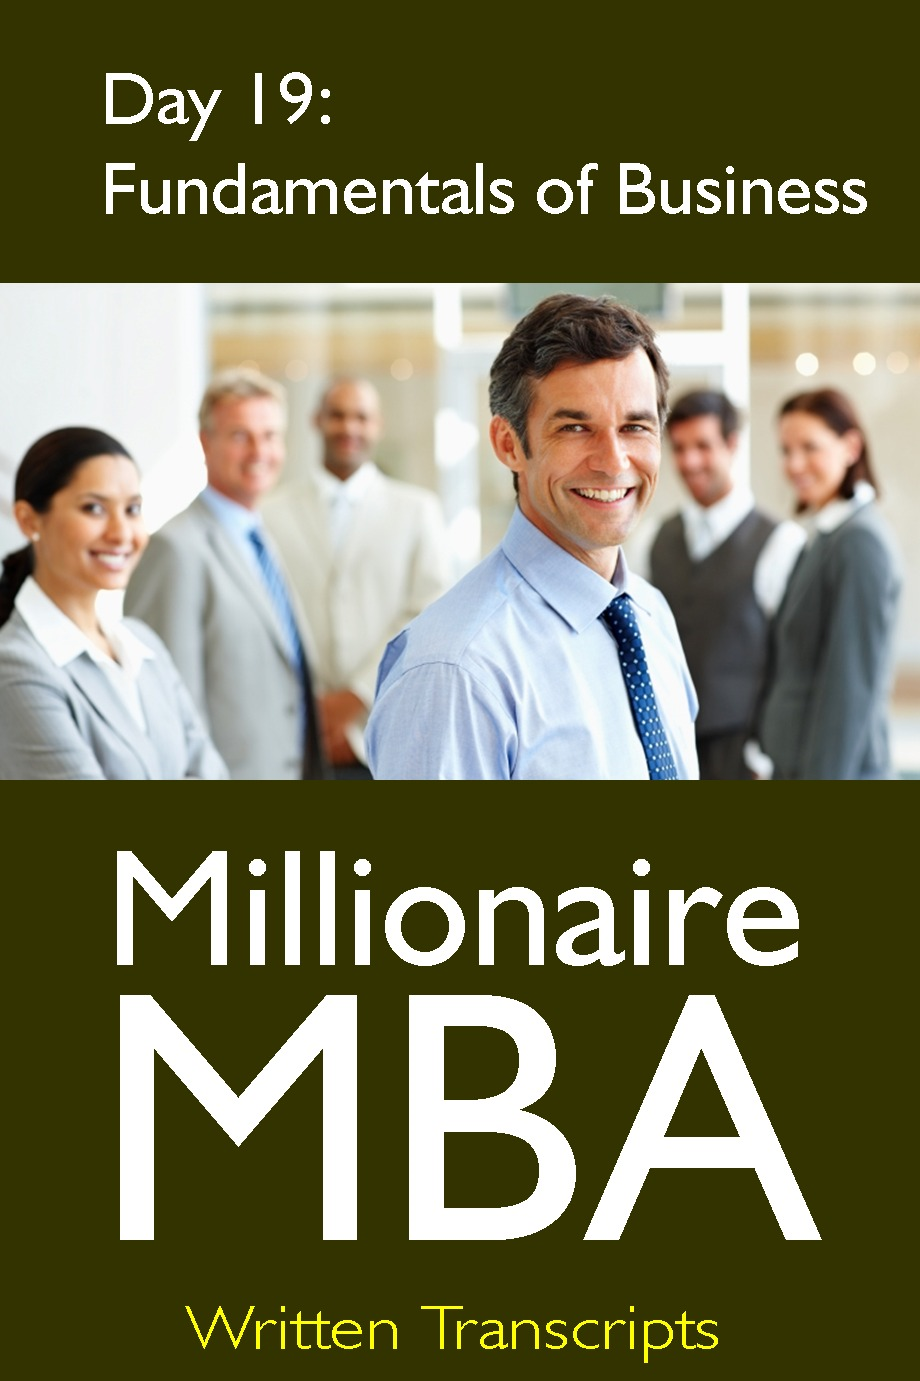 Millionaire MBA Day 19: Fundamentals of Business